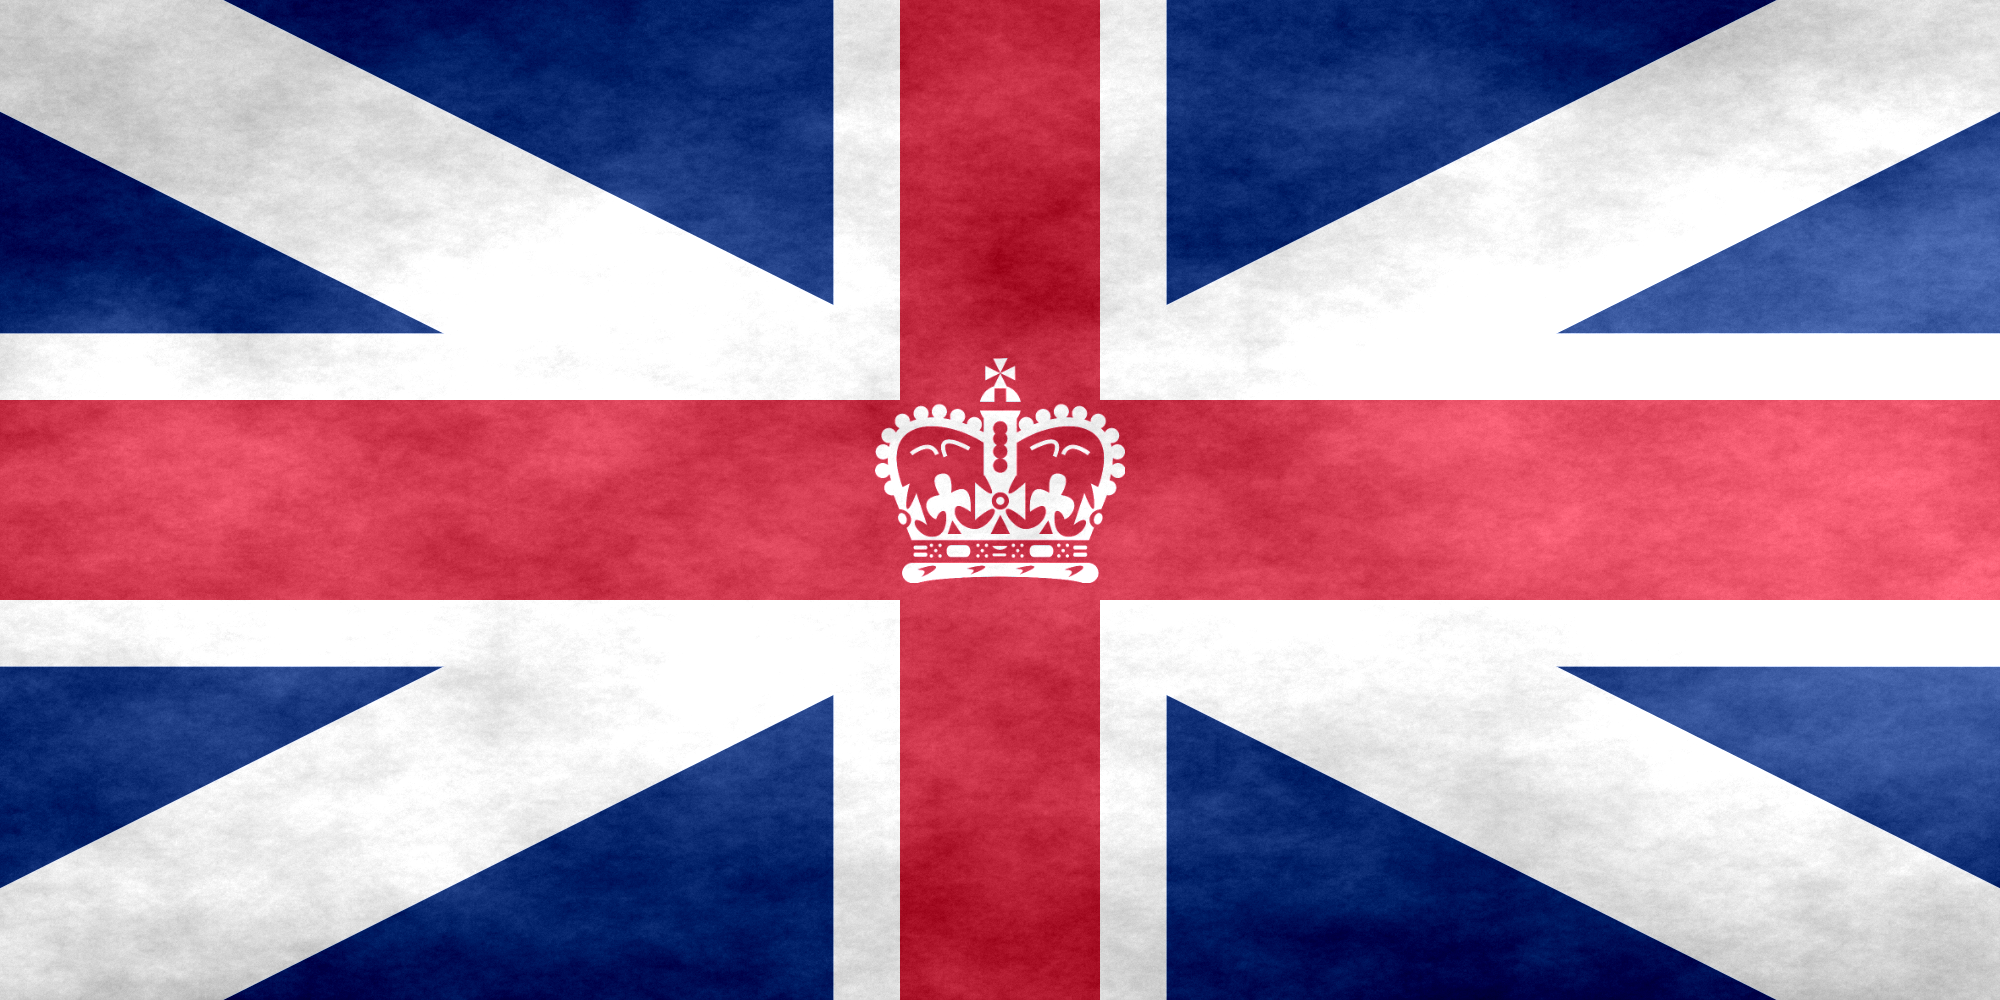 uk royal union flag images download